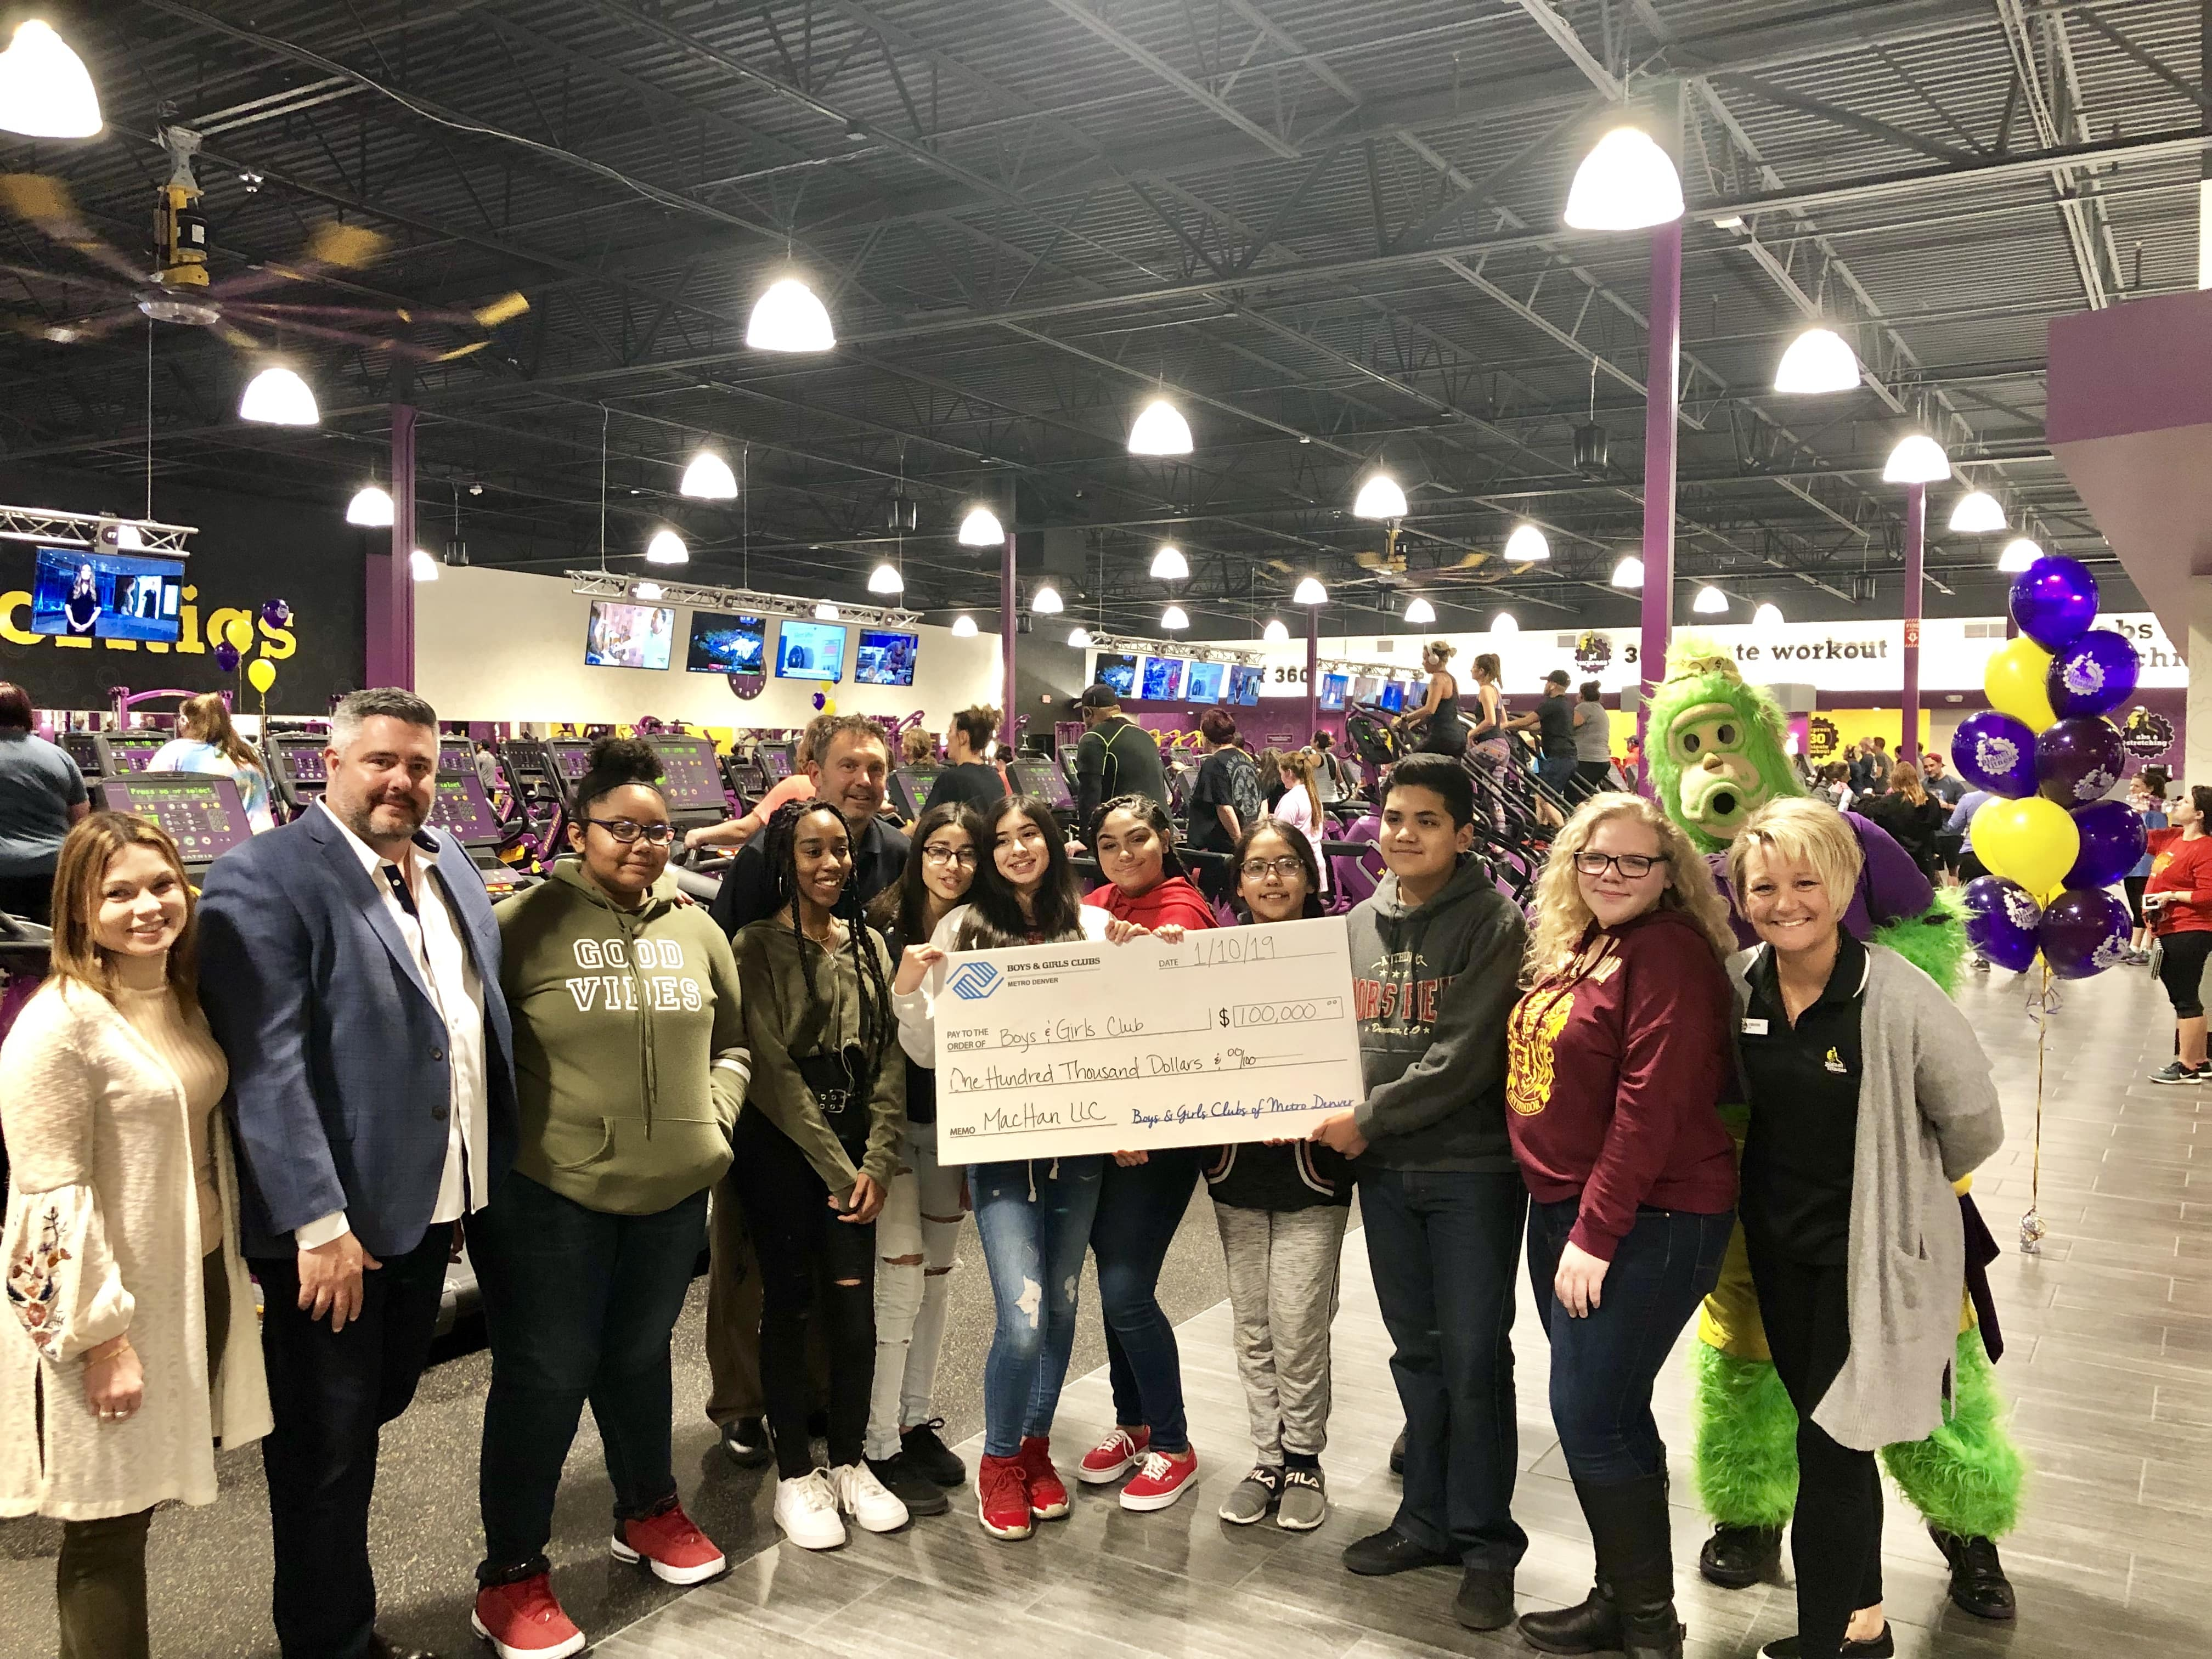 Planet Fitness welcomes Boys & Girls Club kids to their new Brighton gym and makes a generous donation of $100,000 to our programming.